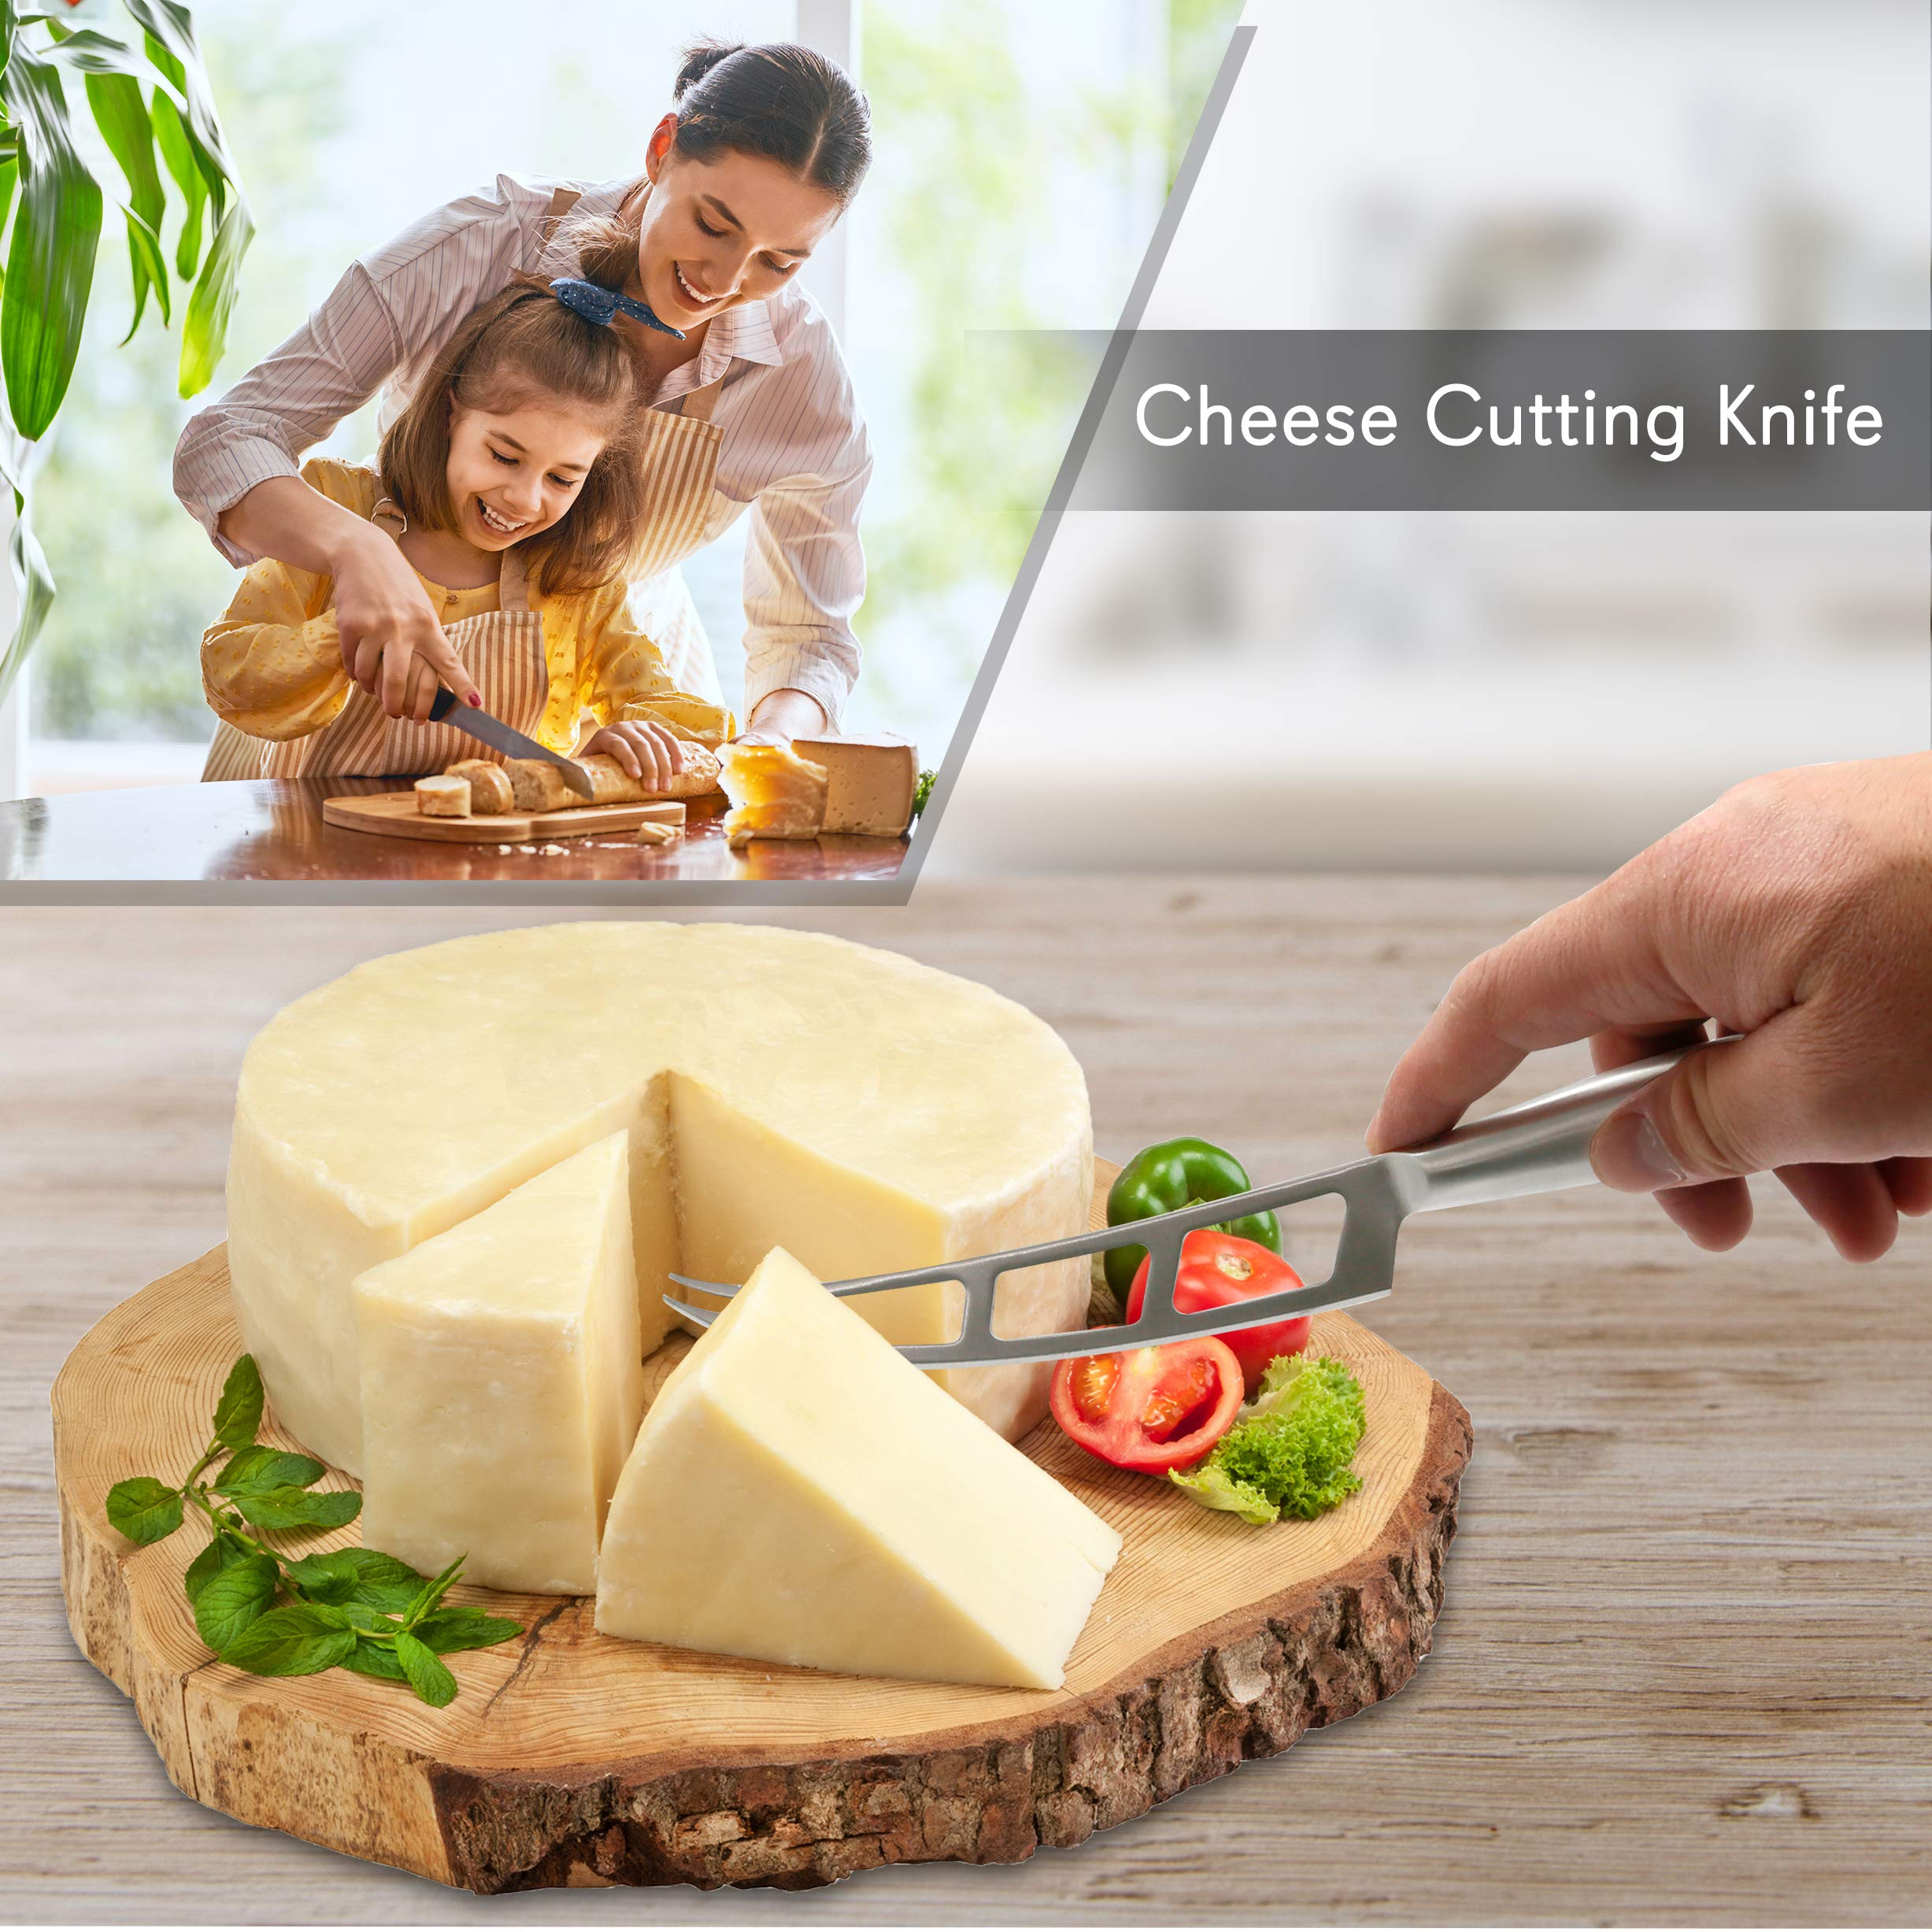 2 Piece Cheese Cutting Set - Portable Fancy Stainless Steel Non Stick Cheese Cutter Knife and Cheese Slicer - Cut, Shave, Slice, Serve, Spread - Gouda Blue Brie Parmesan Cheddar - NutriChef PKCNF10 by Nutrichef (Image #2)